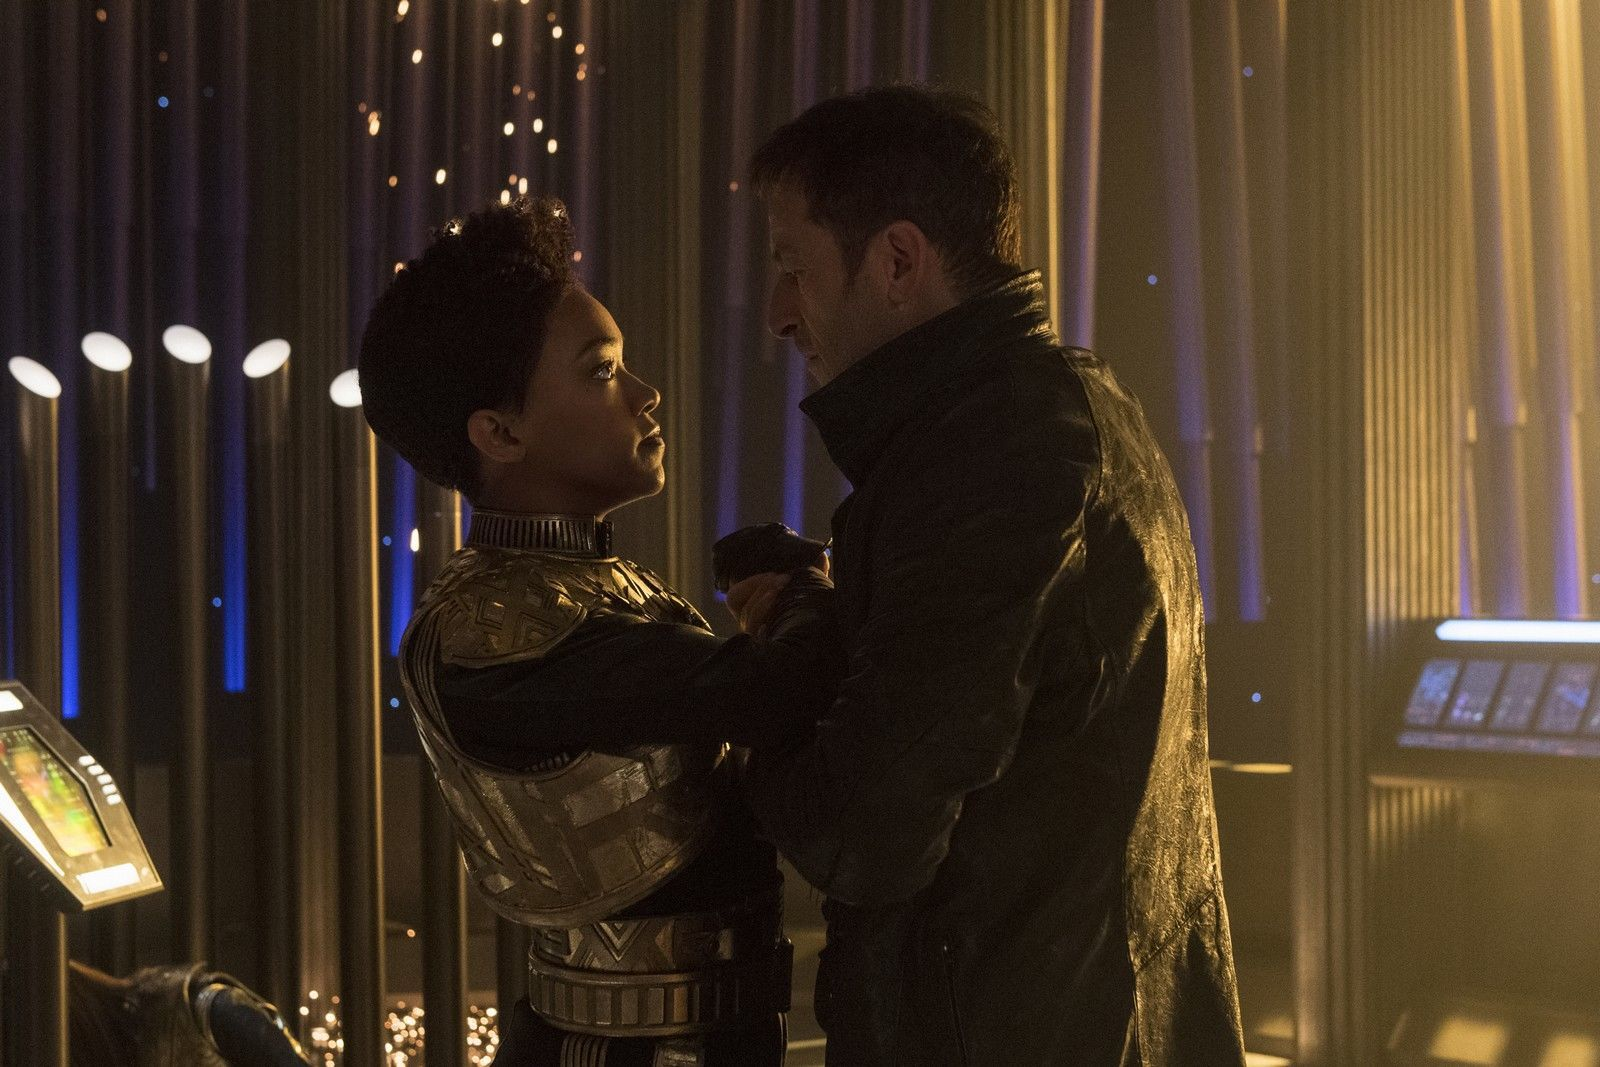 Star Trek: Discovery bosses tease what's coming up in the final two episodes